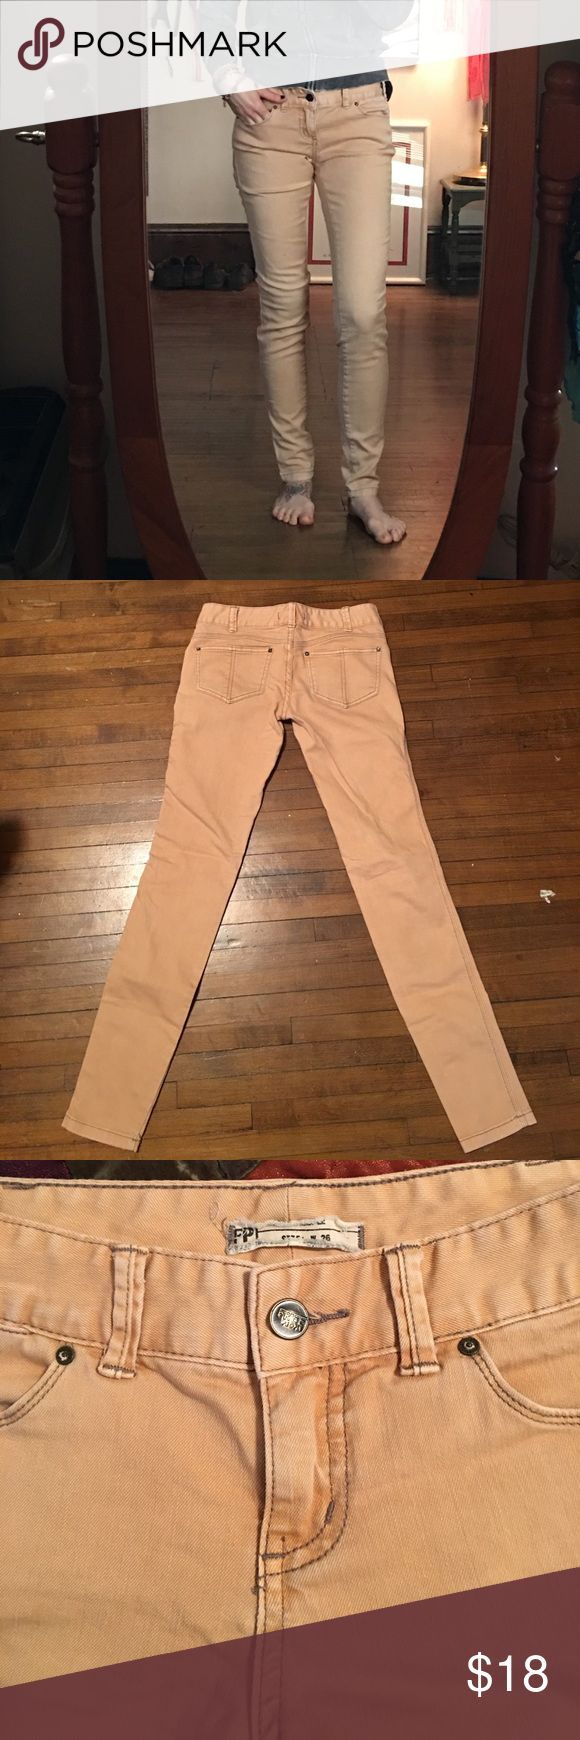 "Free people skinny peach jeans Excellent condition. Waist measures 15"", inseam is 31"" Free People Jeans Skinny"